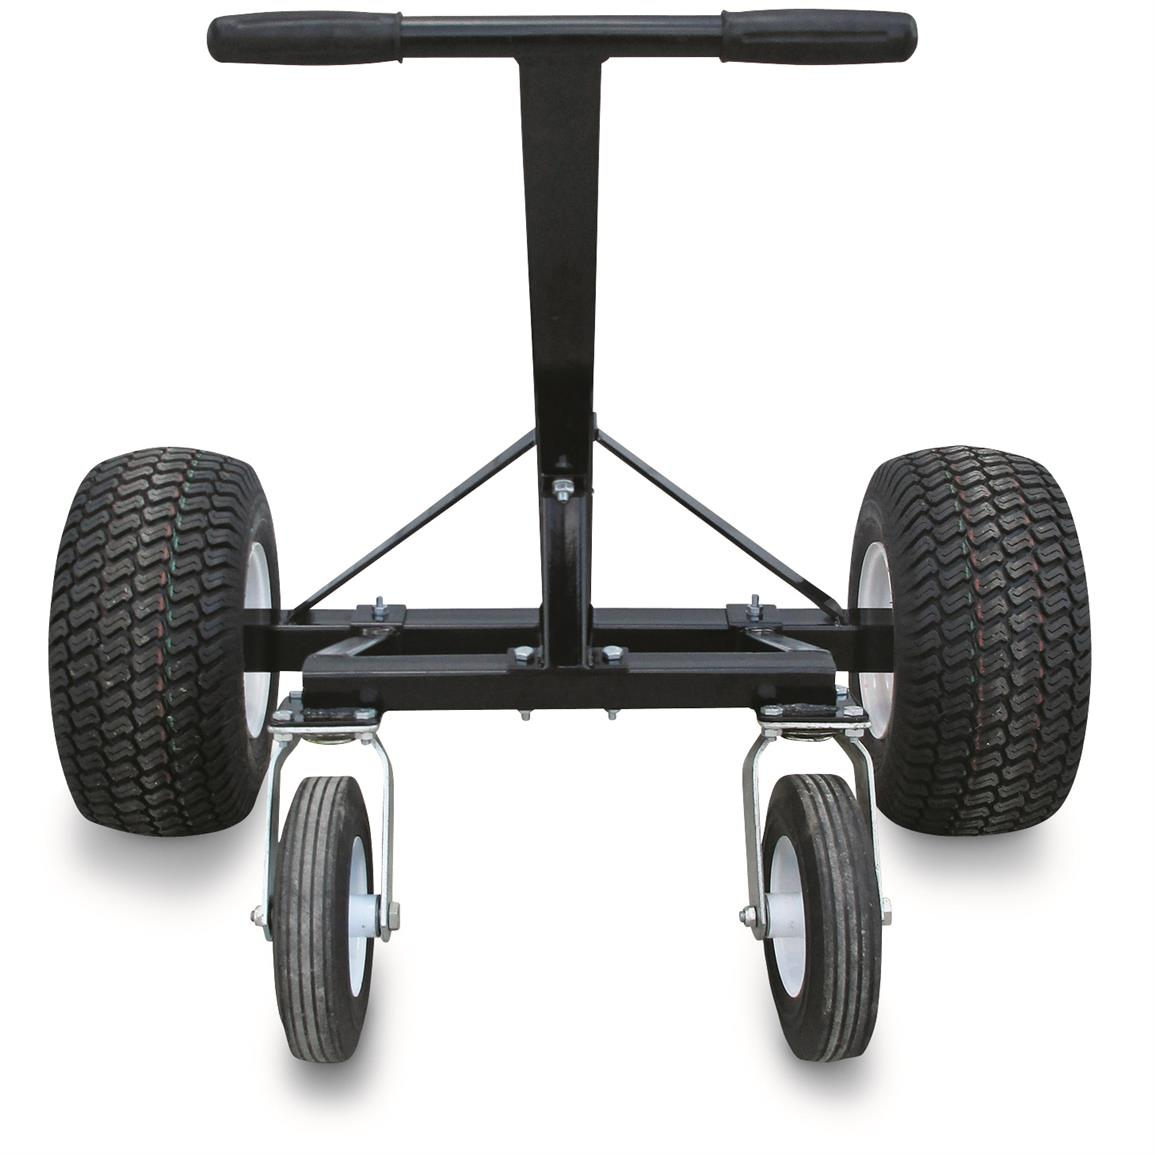 Ultra-Tow Heavy Duty Adjustable Trailer Dolly